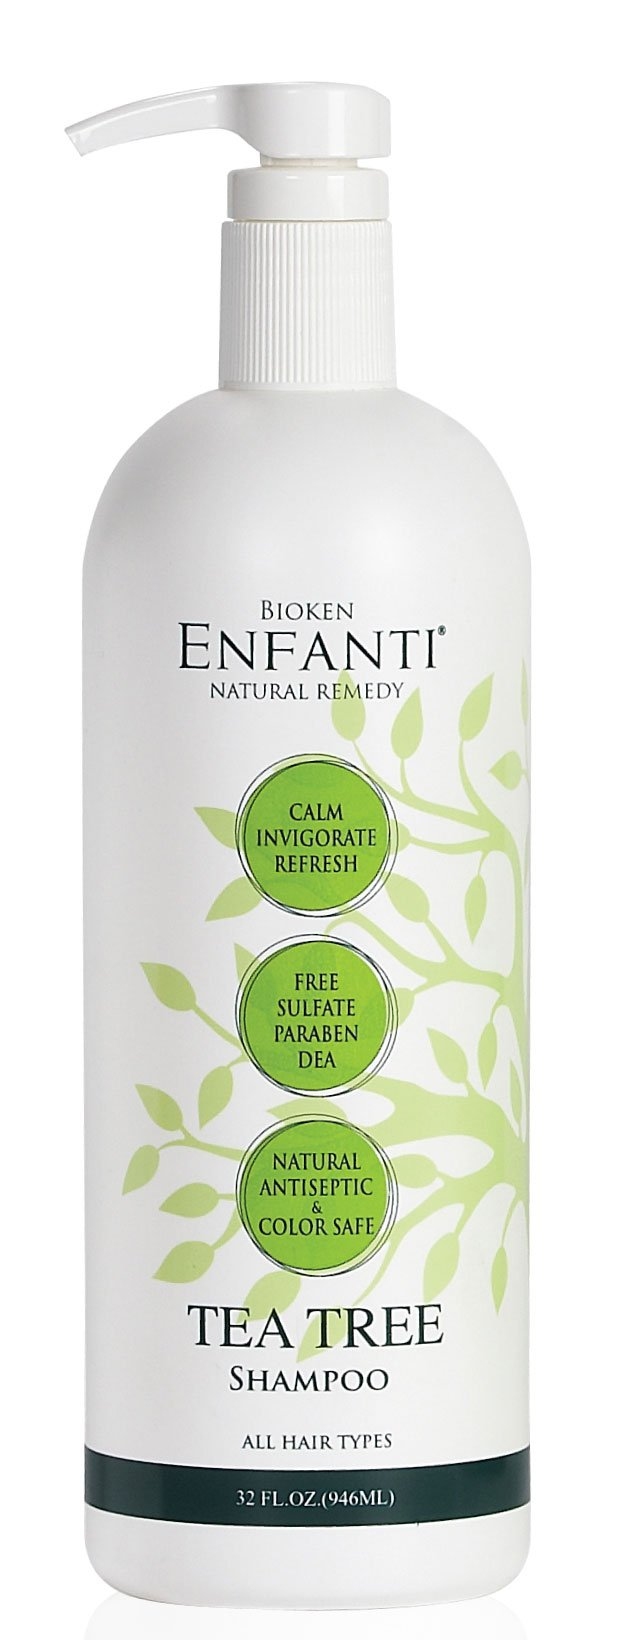 Bioken Enfanti Tea Tree Shampoo - 32 oz by Bioken